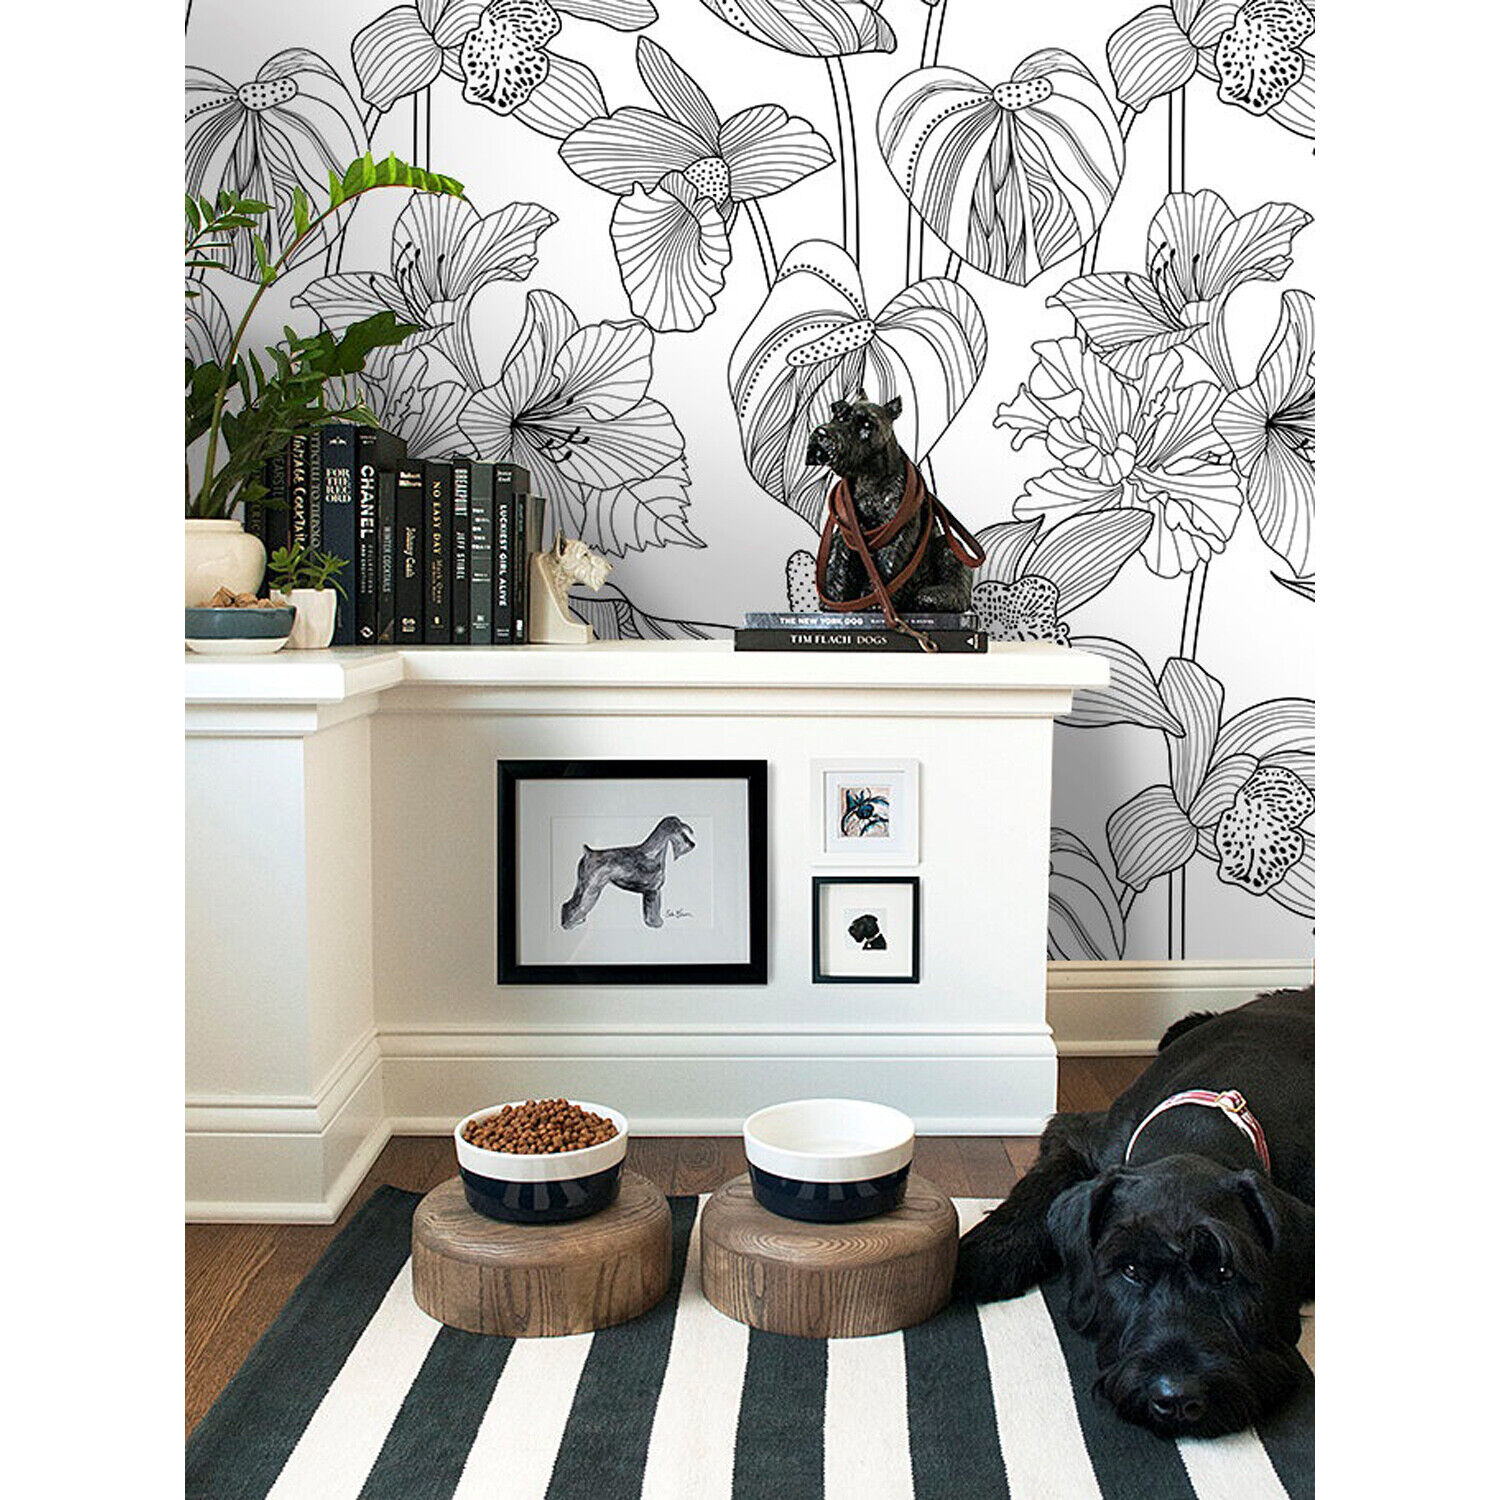 Floral Non-woven wallpaper Grün and Weiß Home wall mural wall cover in